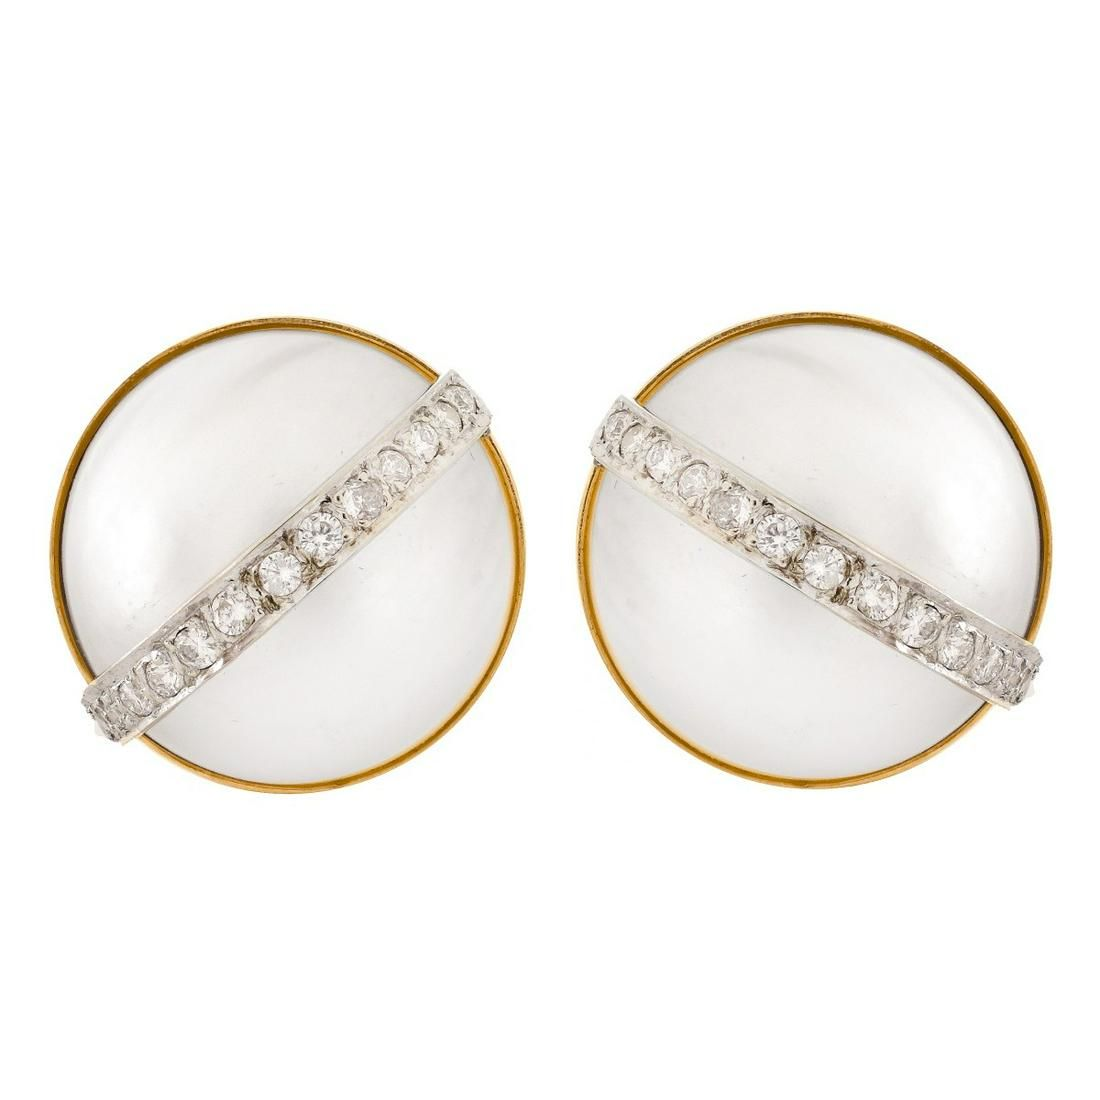 Mabe Pearl, Diamond and 14K Gold Earrings